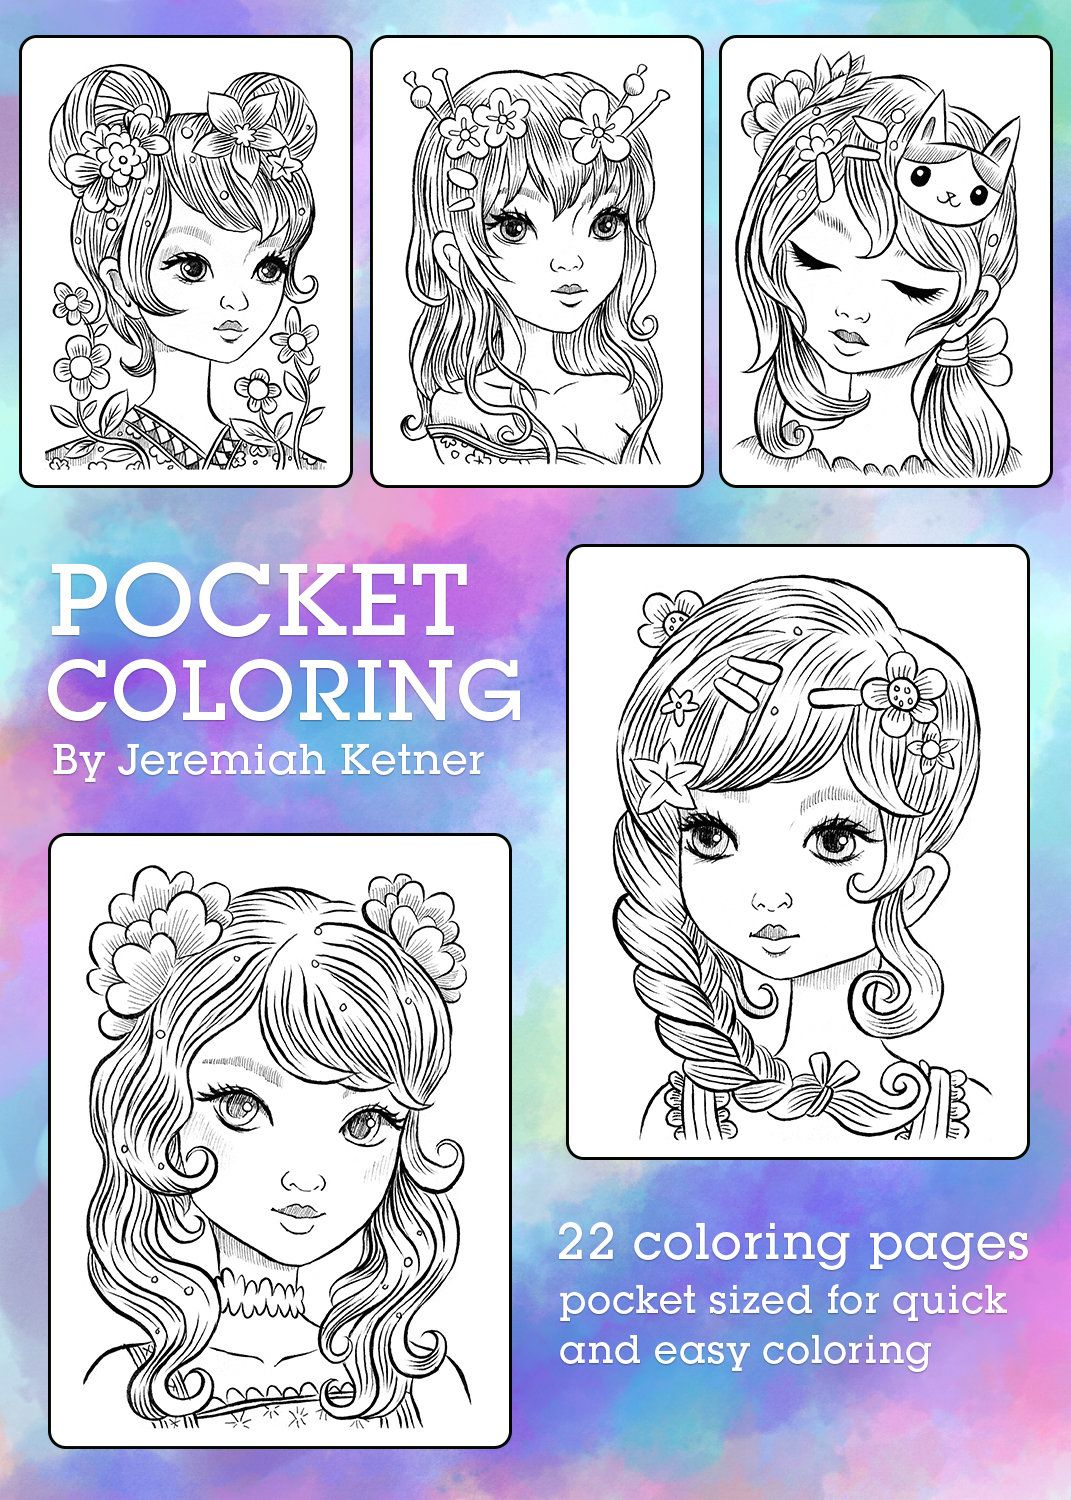 Pocket Coloring Book Pdf Download Jeremiah Ketner